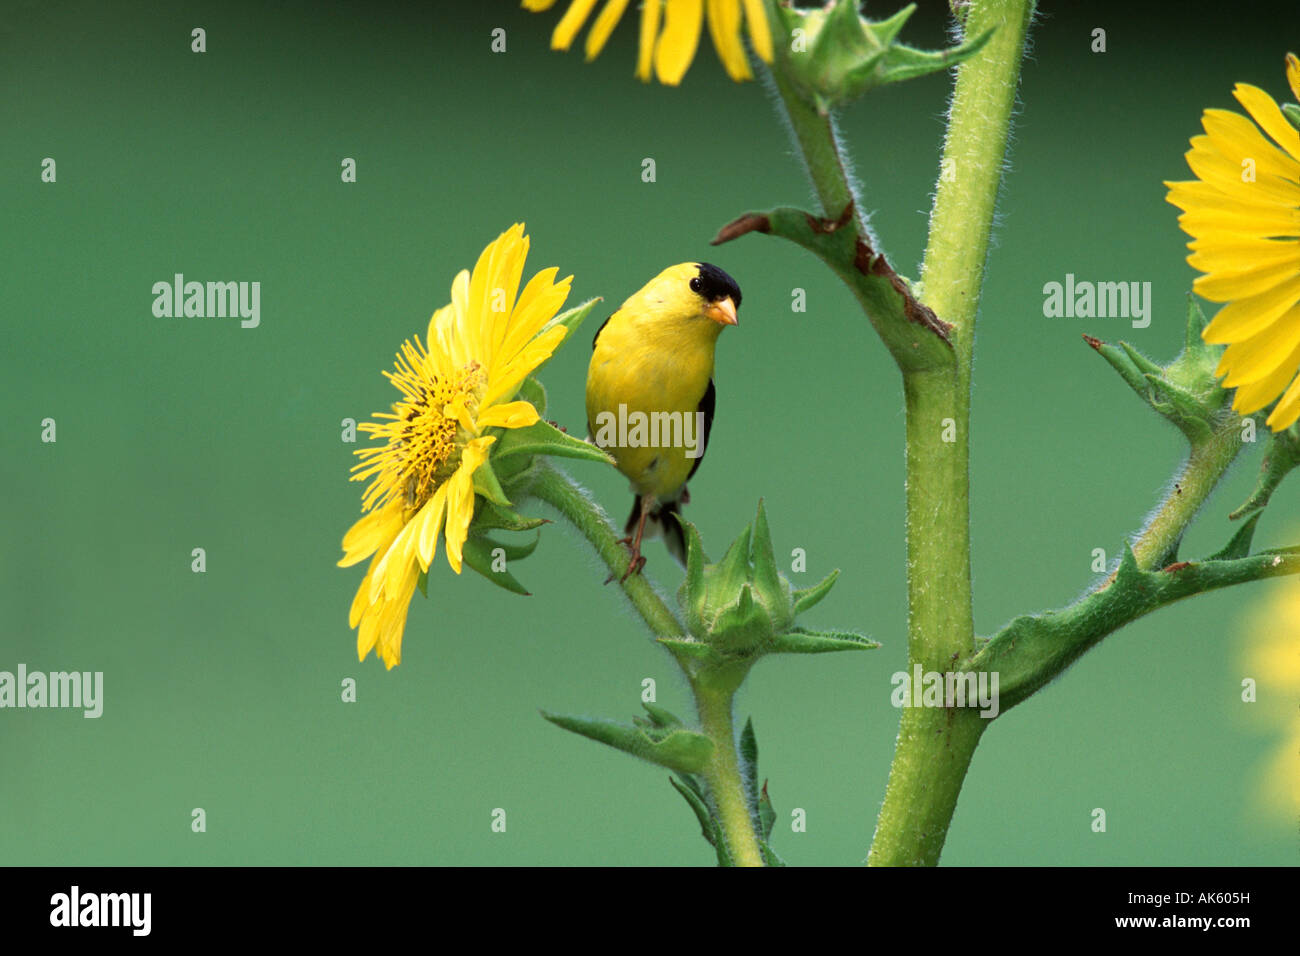 American Goldfinch Perched in Sunflowers - Stock Image